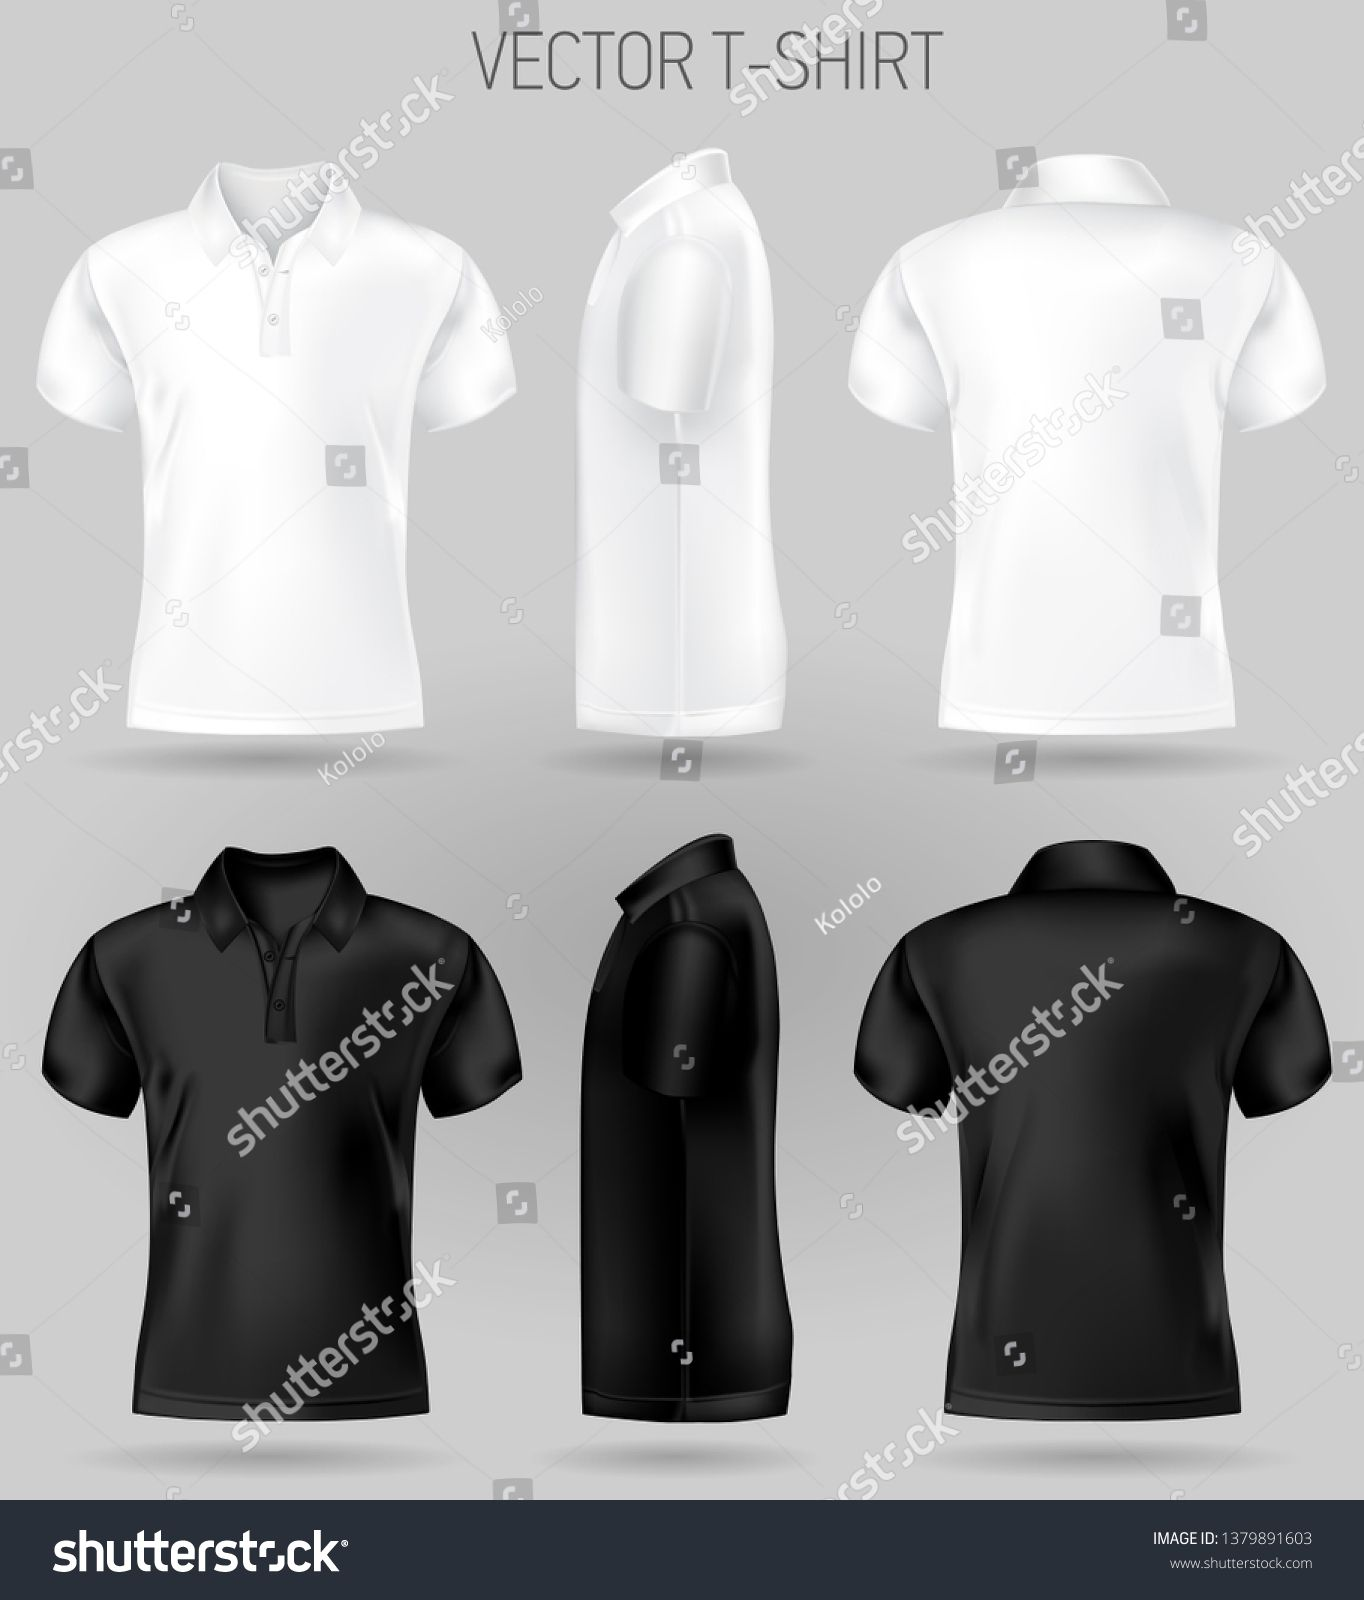 Download Black And White Short Sleeve Polo Shirt Design Templates Front Back And Side Views Vecto Polo Shirt Design T Shirt Design Template Short Sleeve Polo Shirts